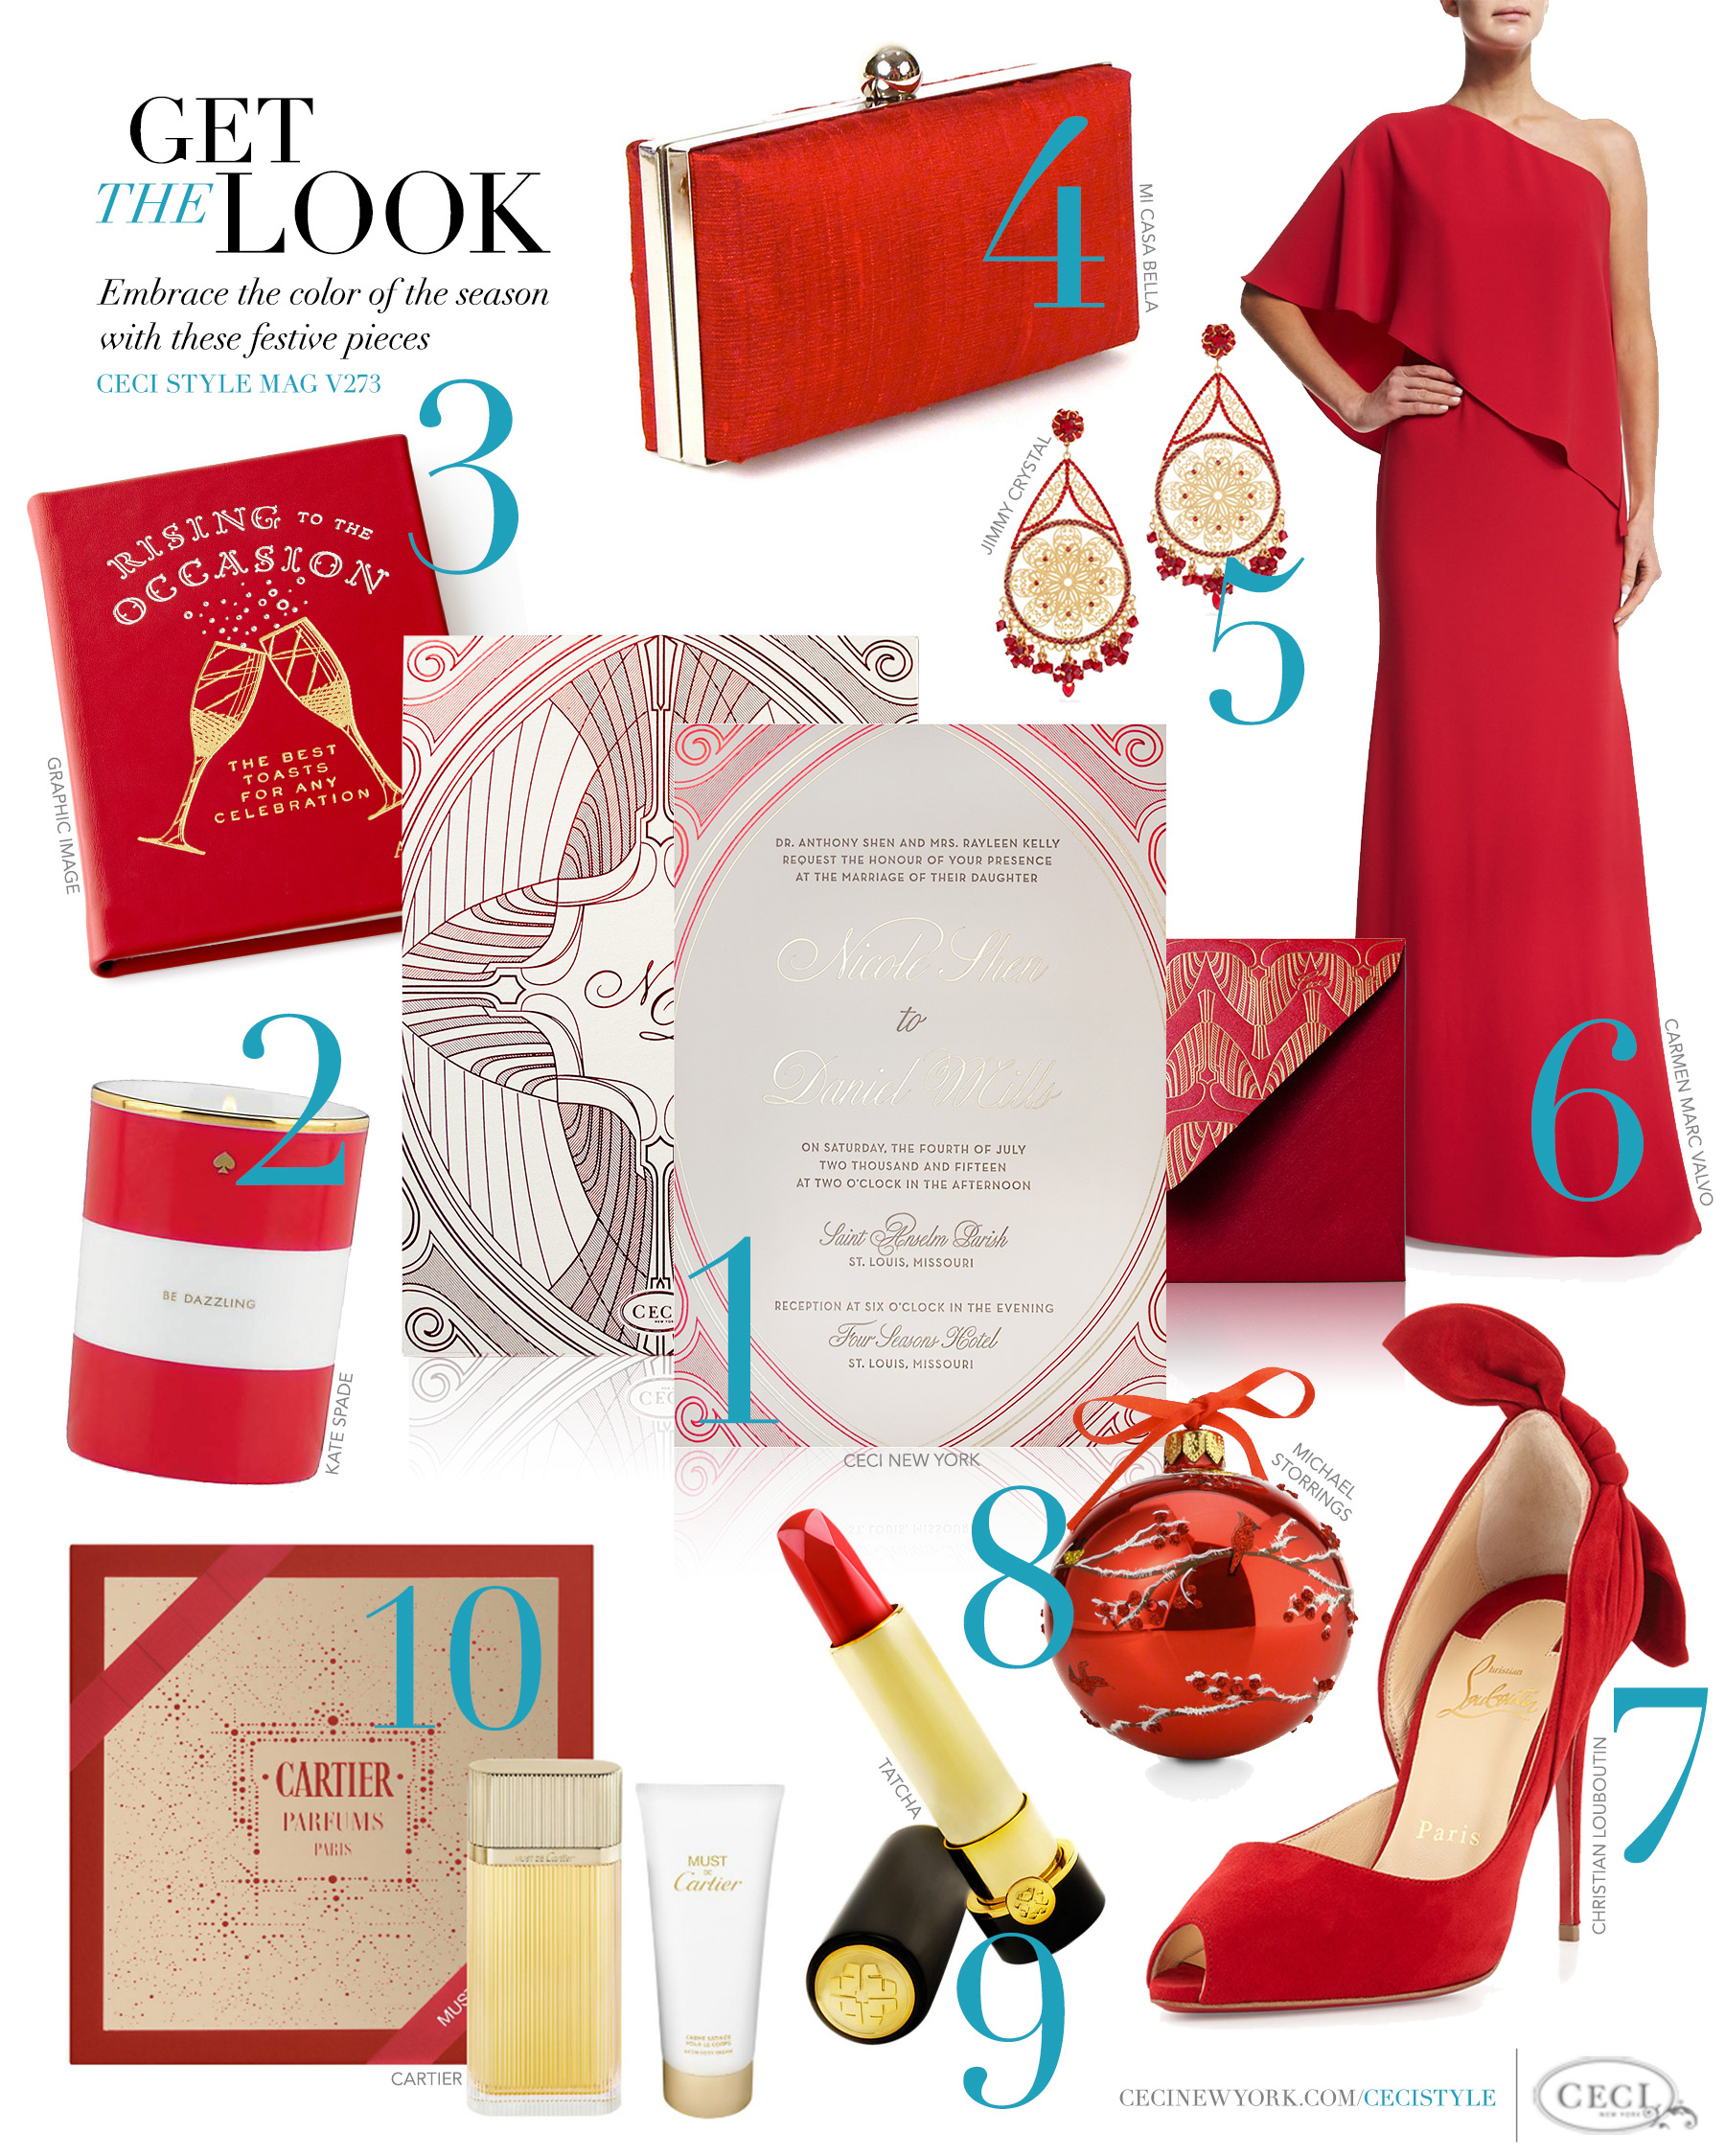 V273: Get the Look - The Red Issue — Ceci Style